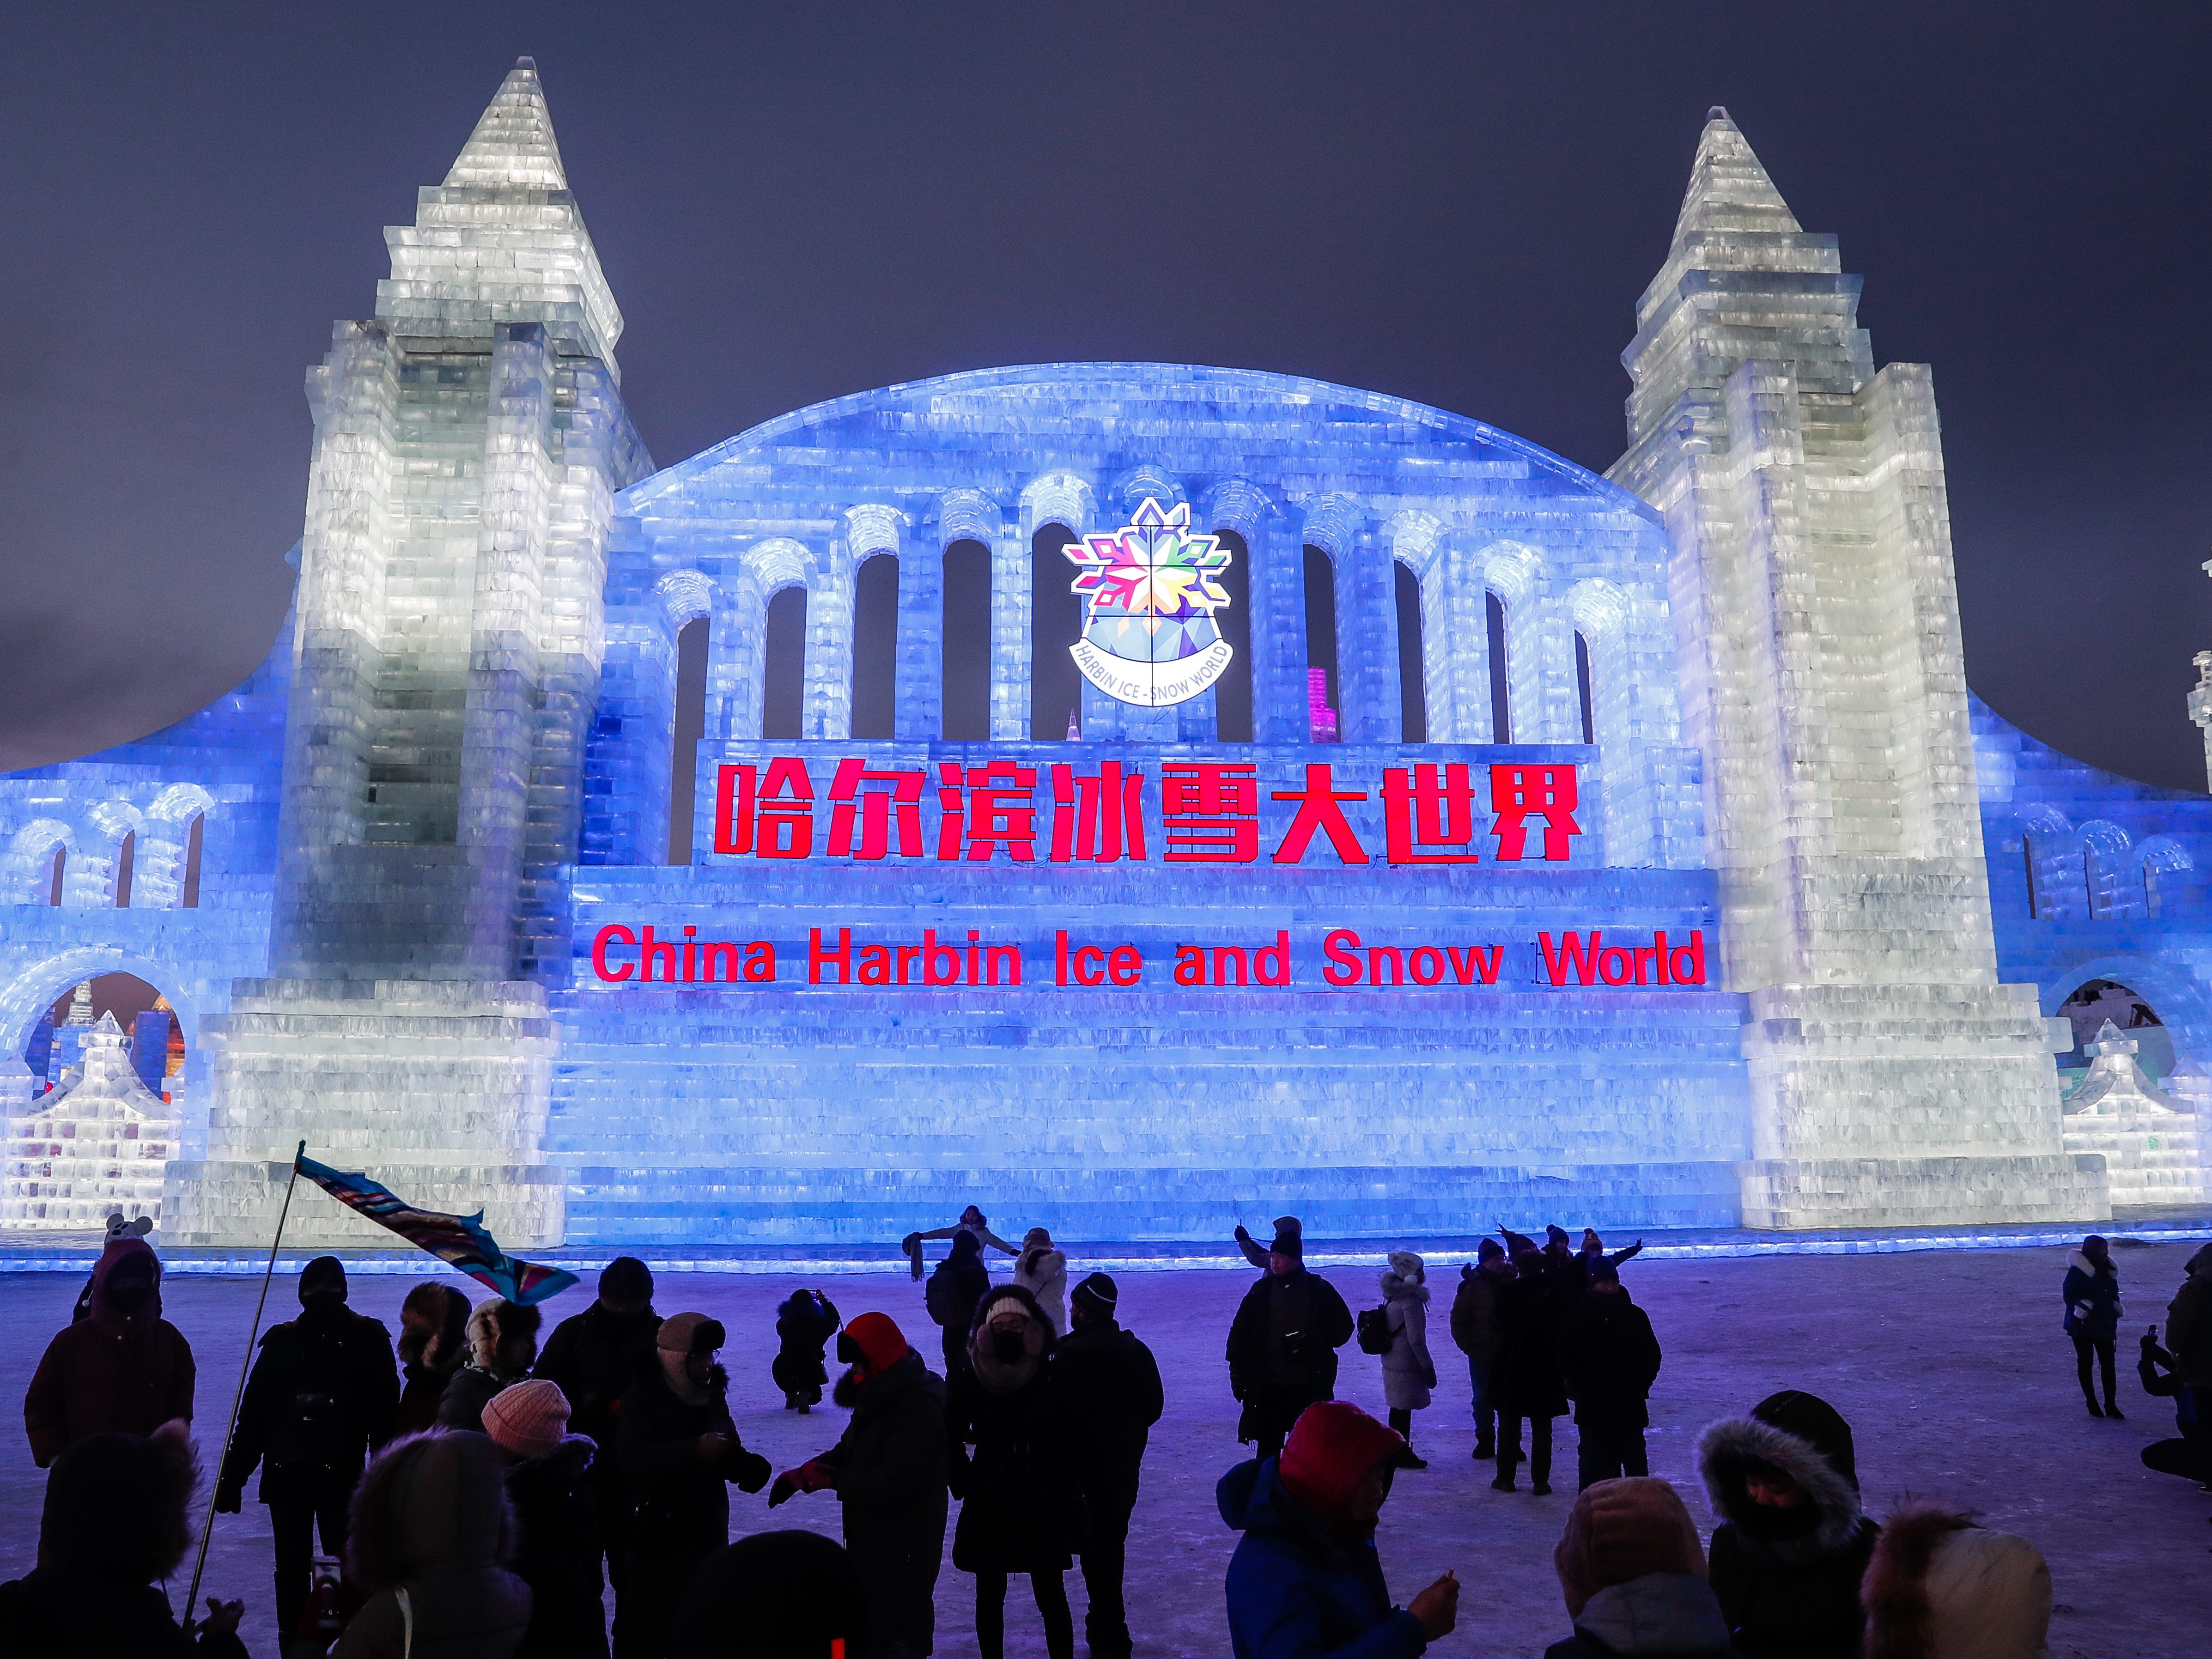 The annual Harbin International Ice and Snow Sculpture Festival, in Harbin, China.